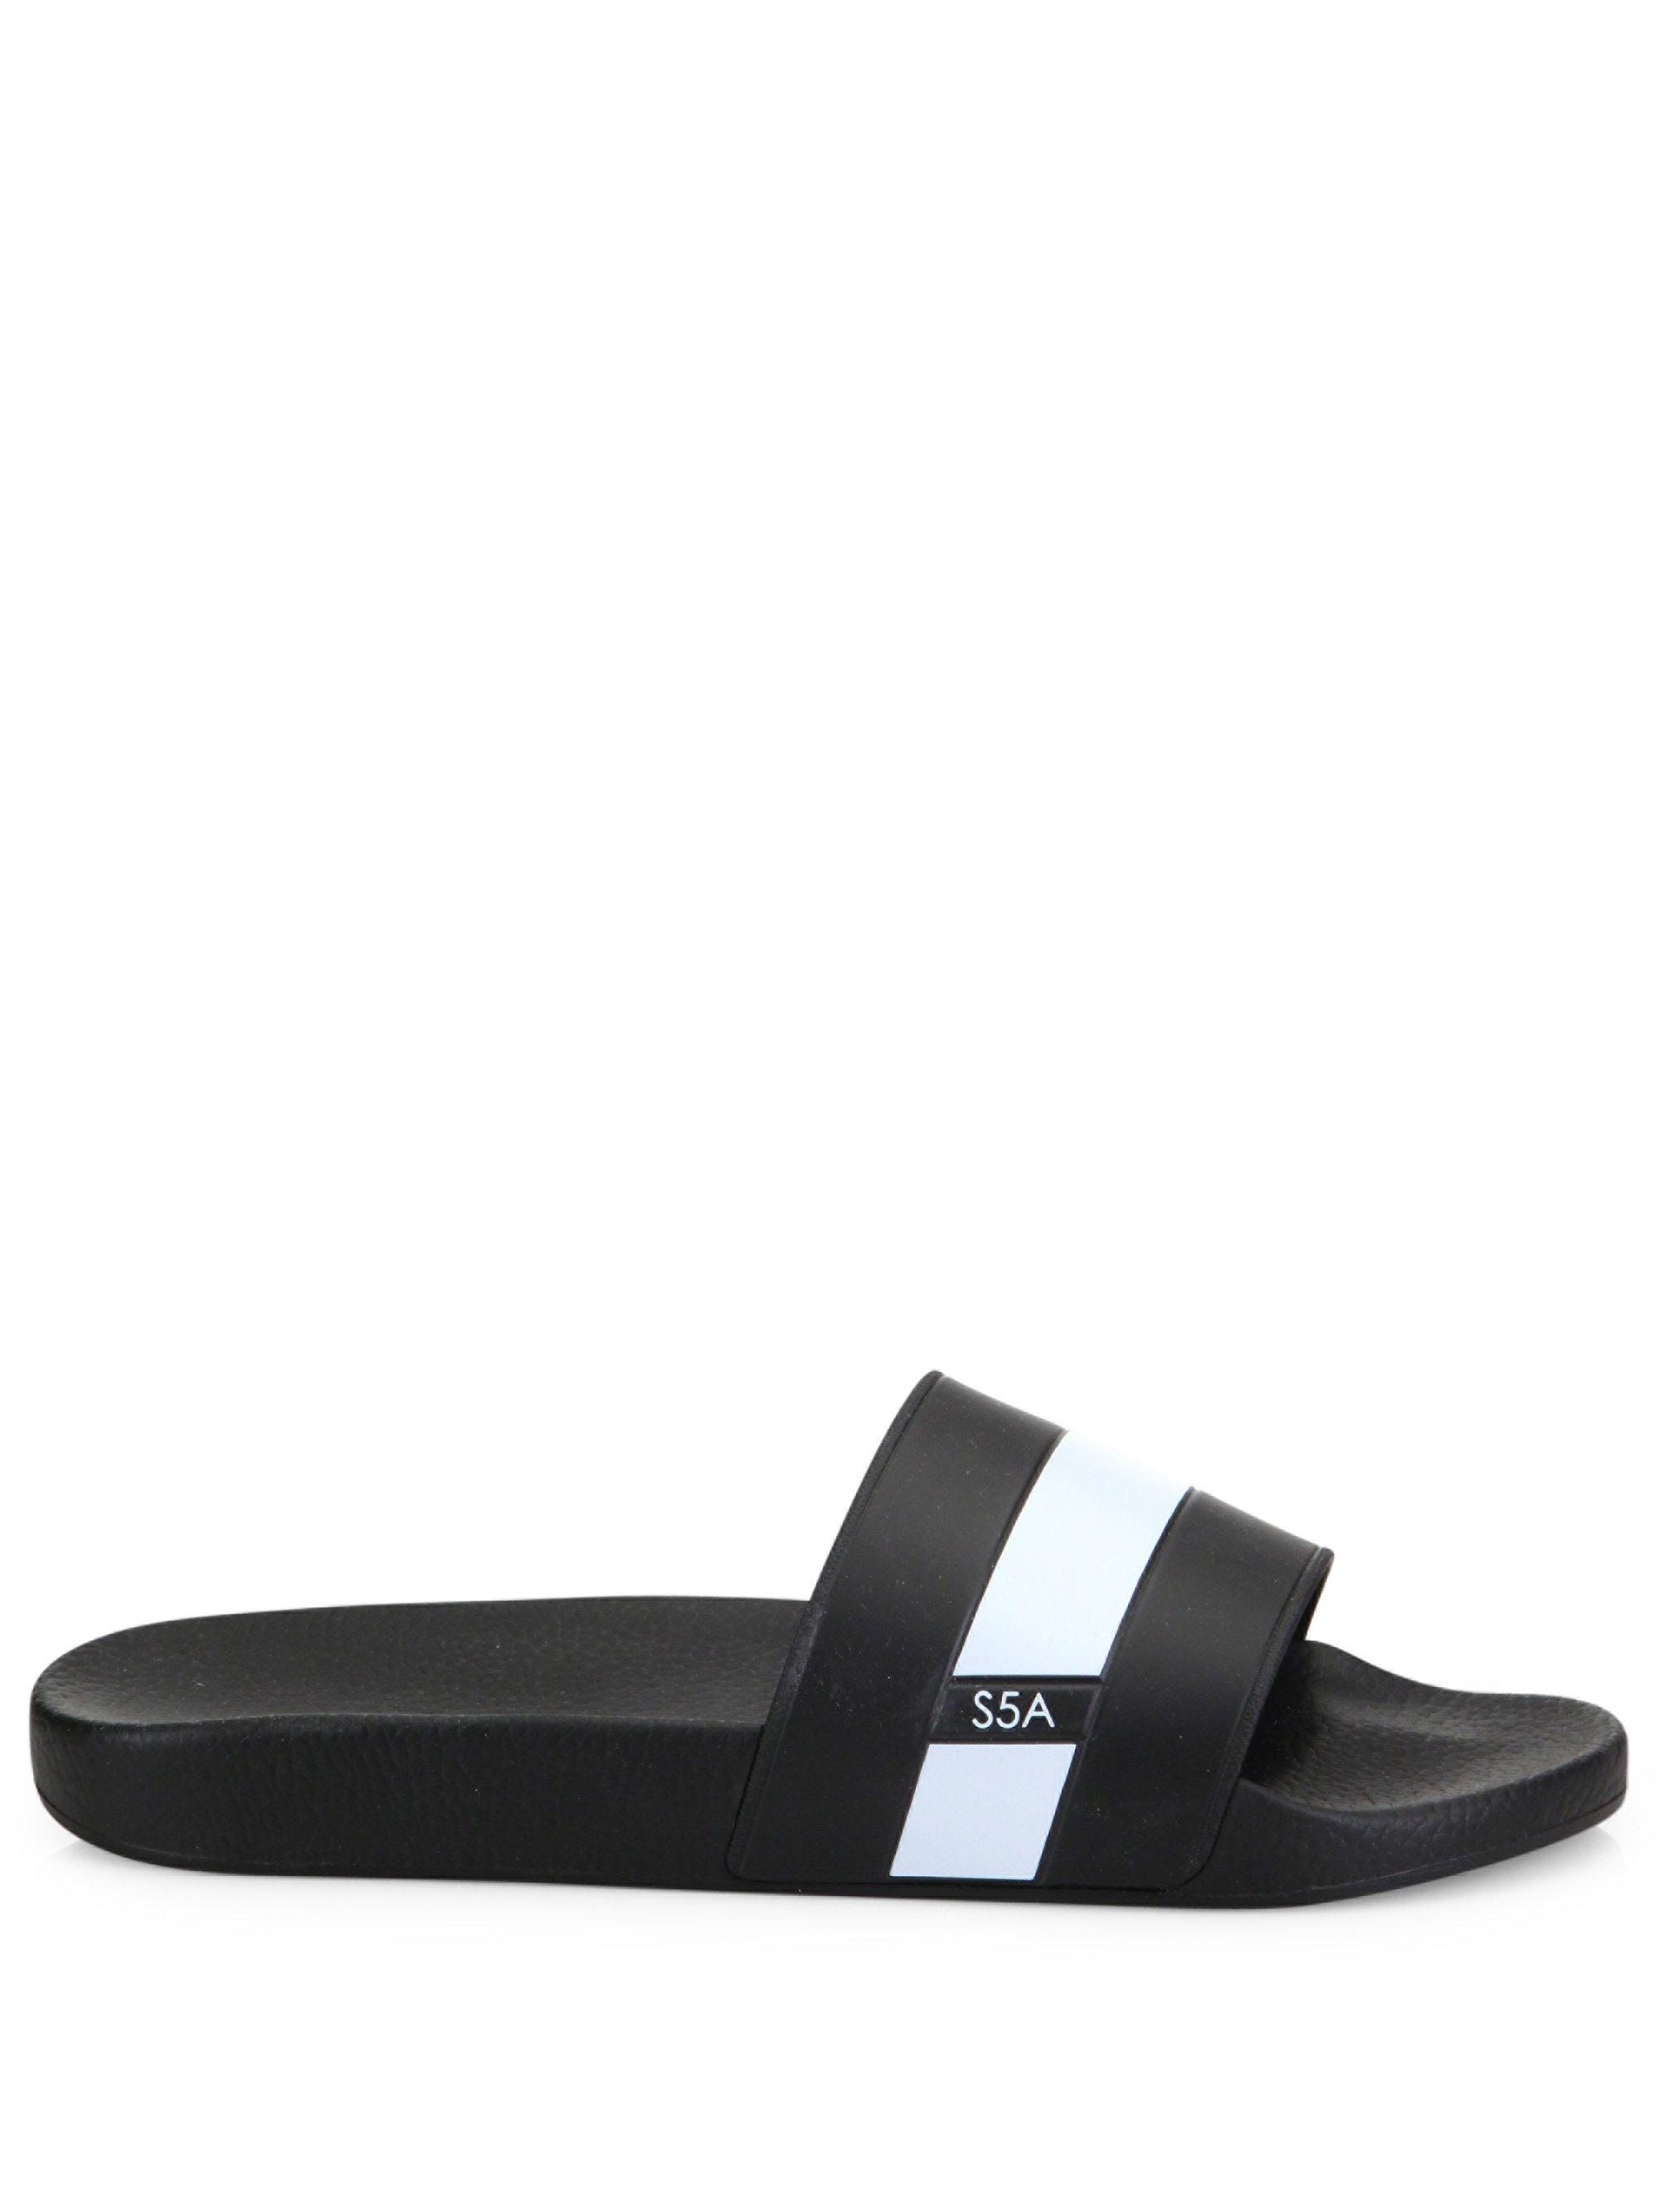 Saks Fifth Avenue COLLECTION Striped Slides nGCOV23kWk